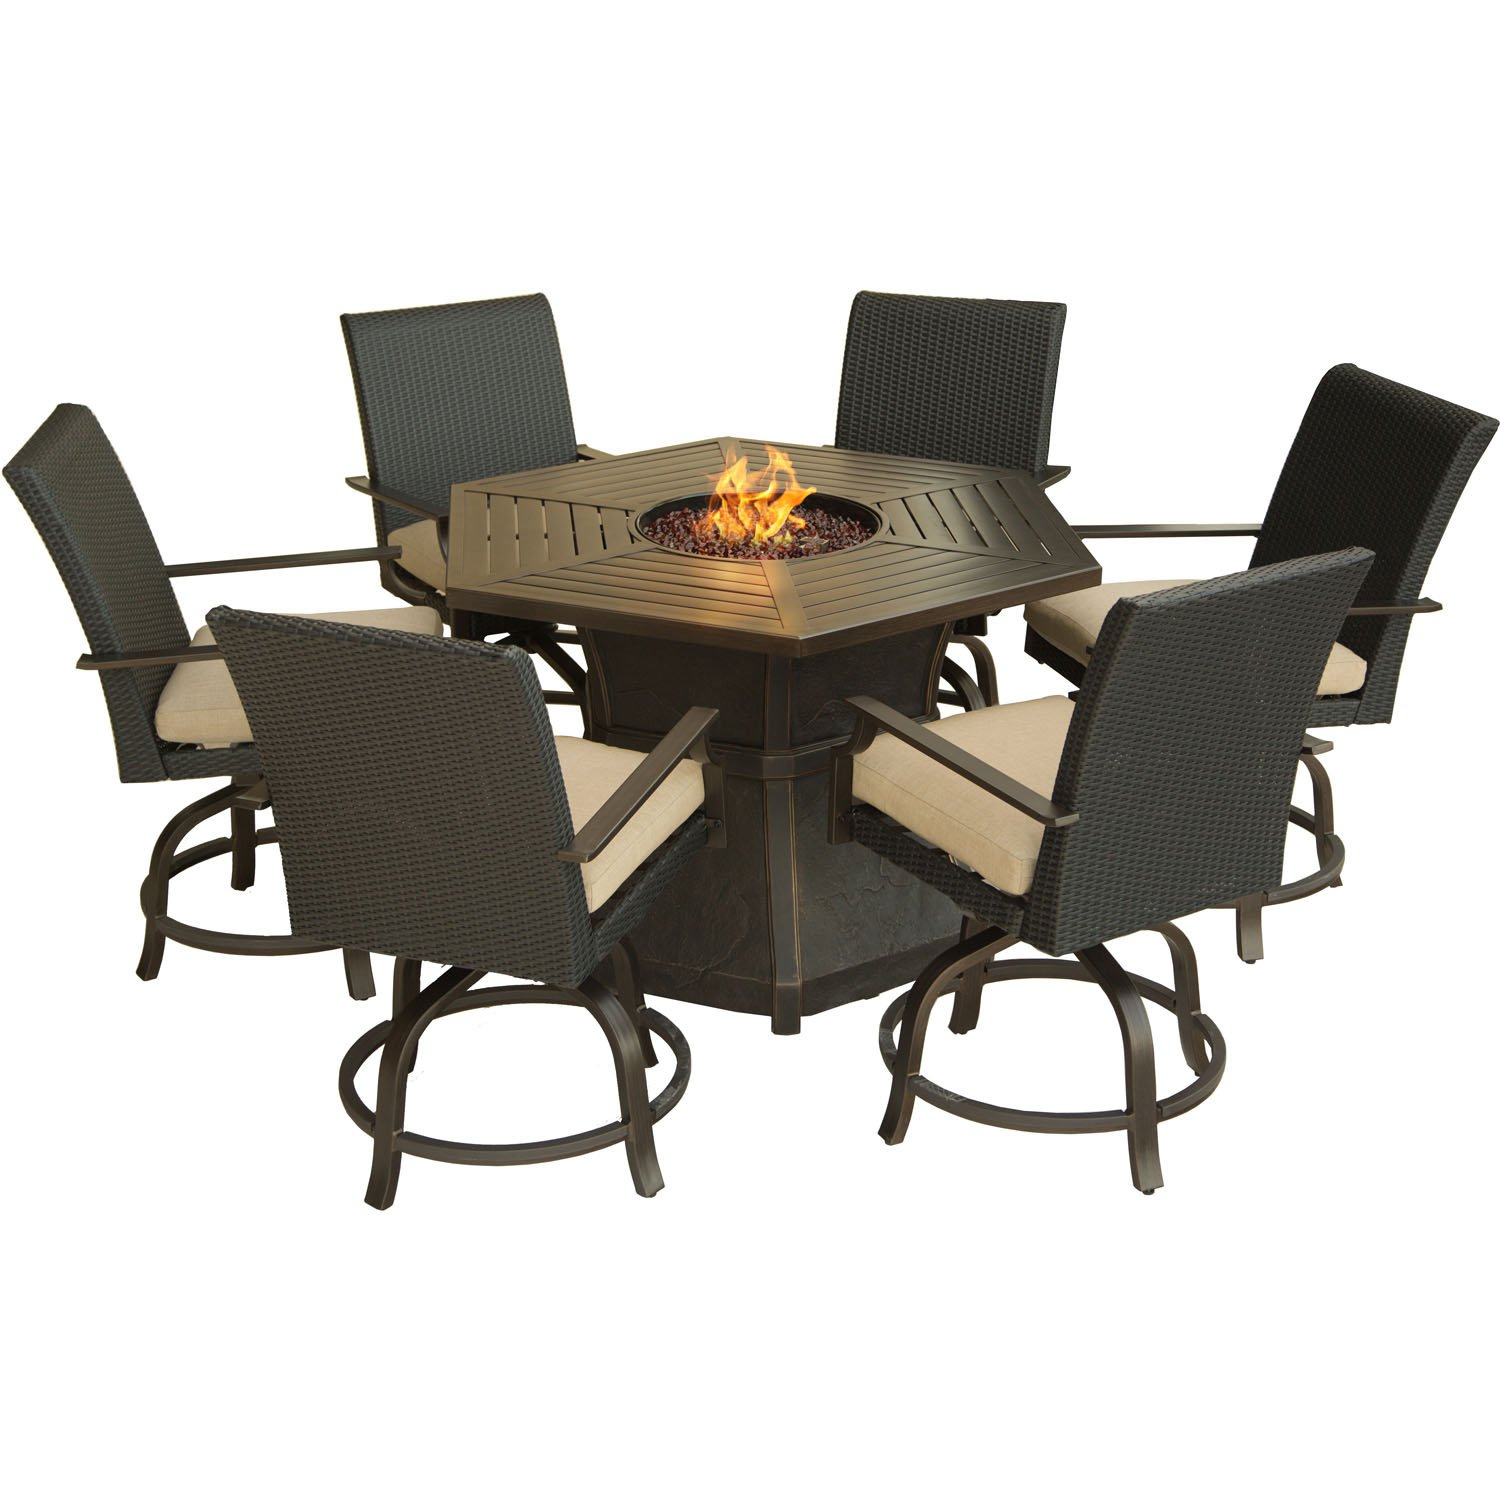 Amazon.com : Hanover 7 Piece Aspen Creek Outdoor Fire Pit Dining Set,  Desert Sunset : Garden U0026 Outdoor